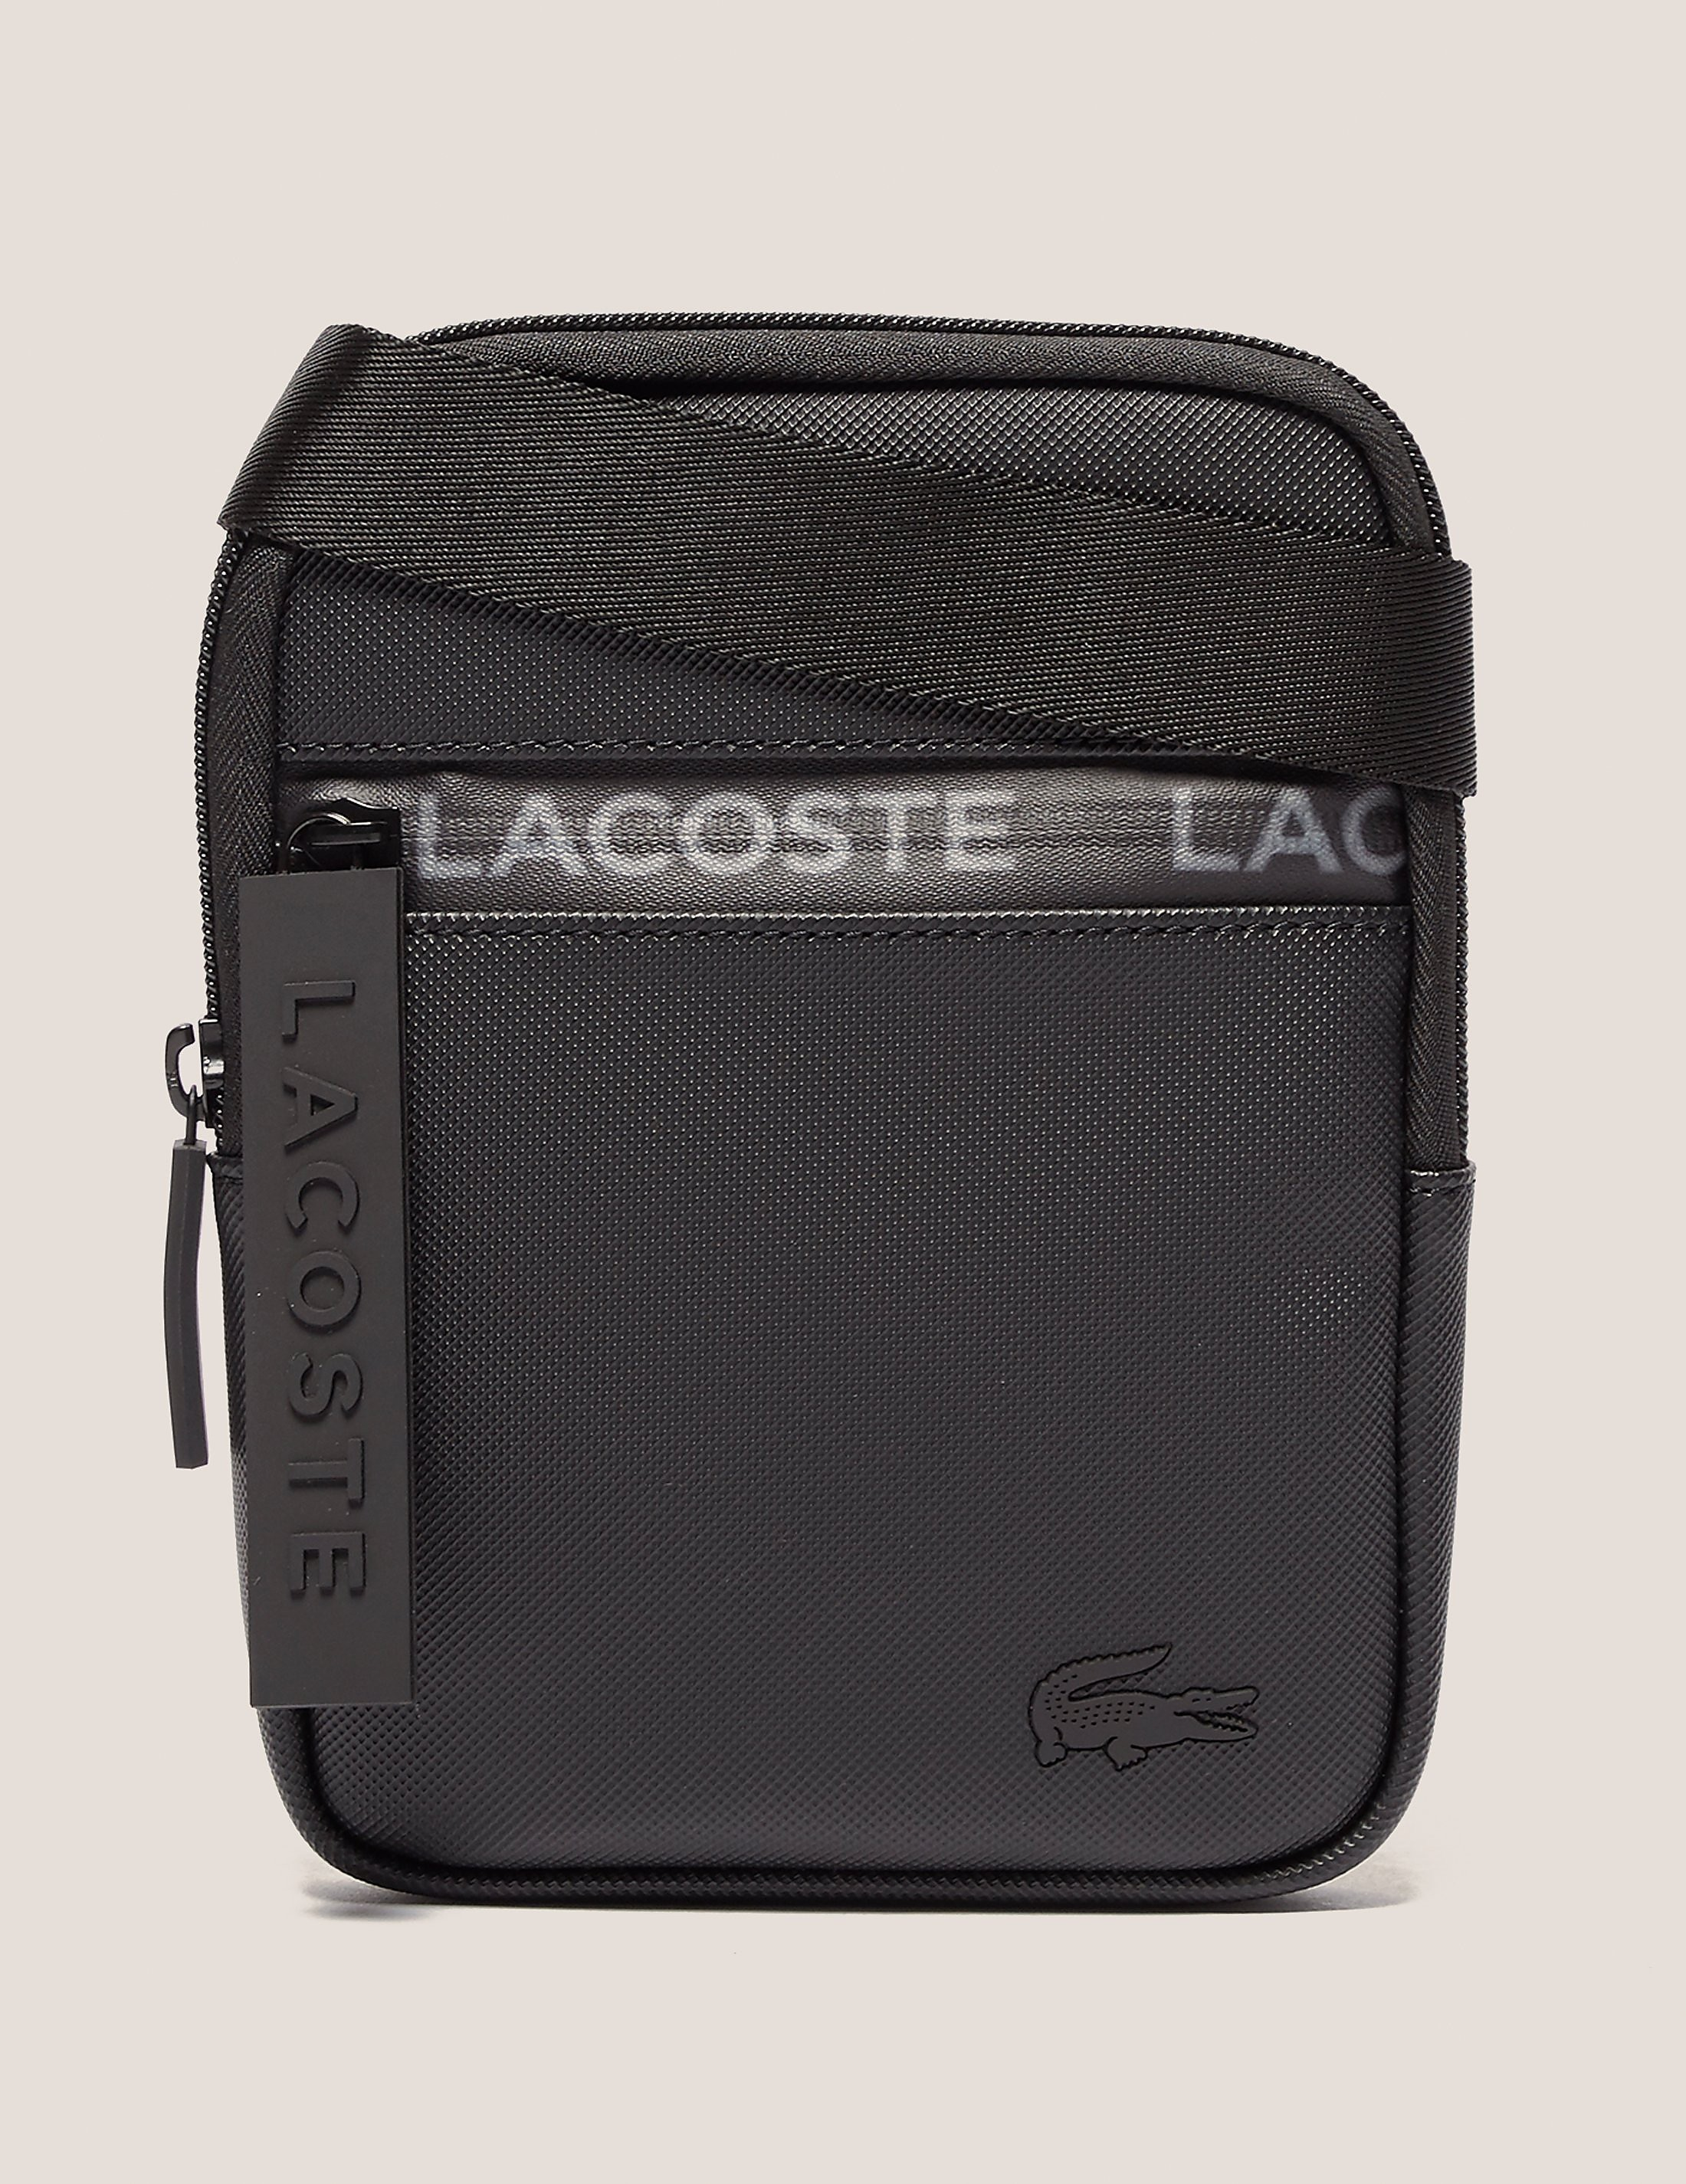 Lacoste Mini Pouch Bag